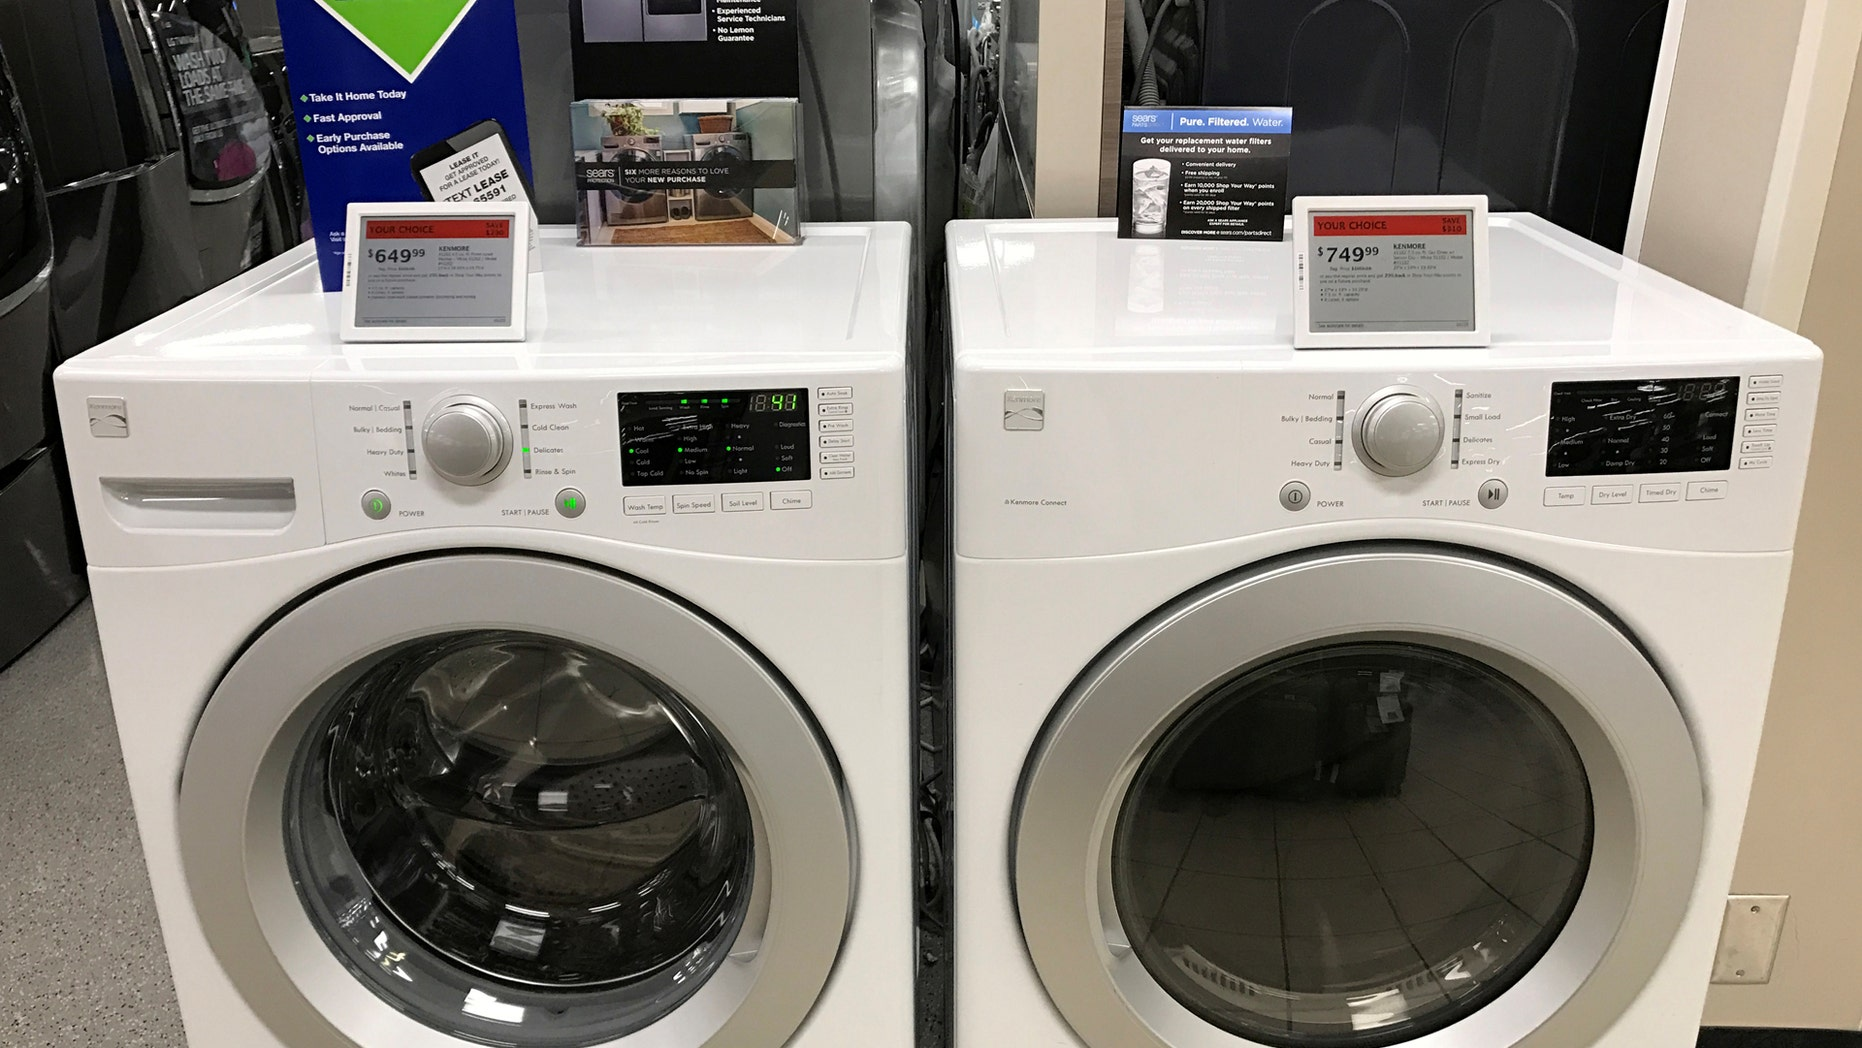 File photo: Sears Kenmore washing machines are shown for sale inside a Sears department store in La Jolla, California, U.S., March 22, 2017. (REUTERS/Mike Blake)